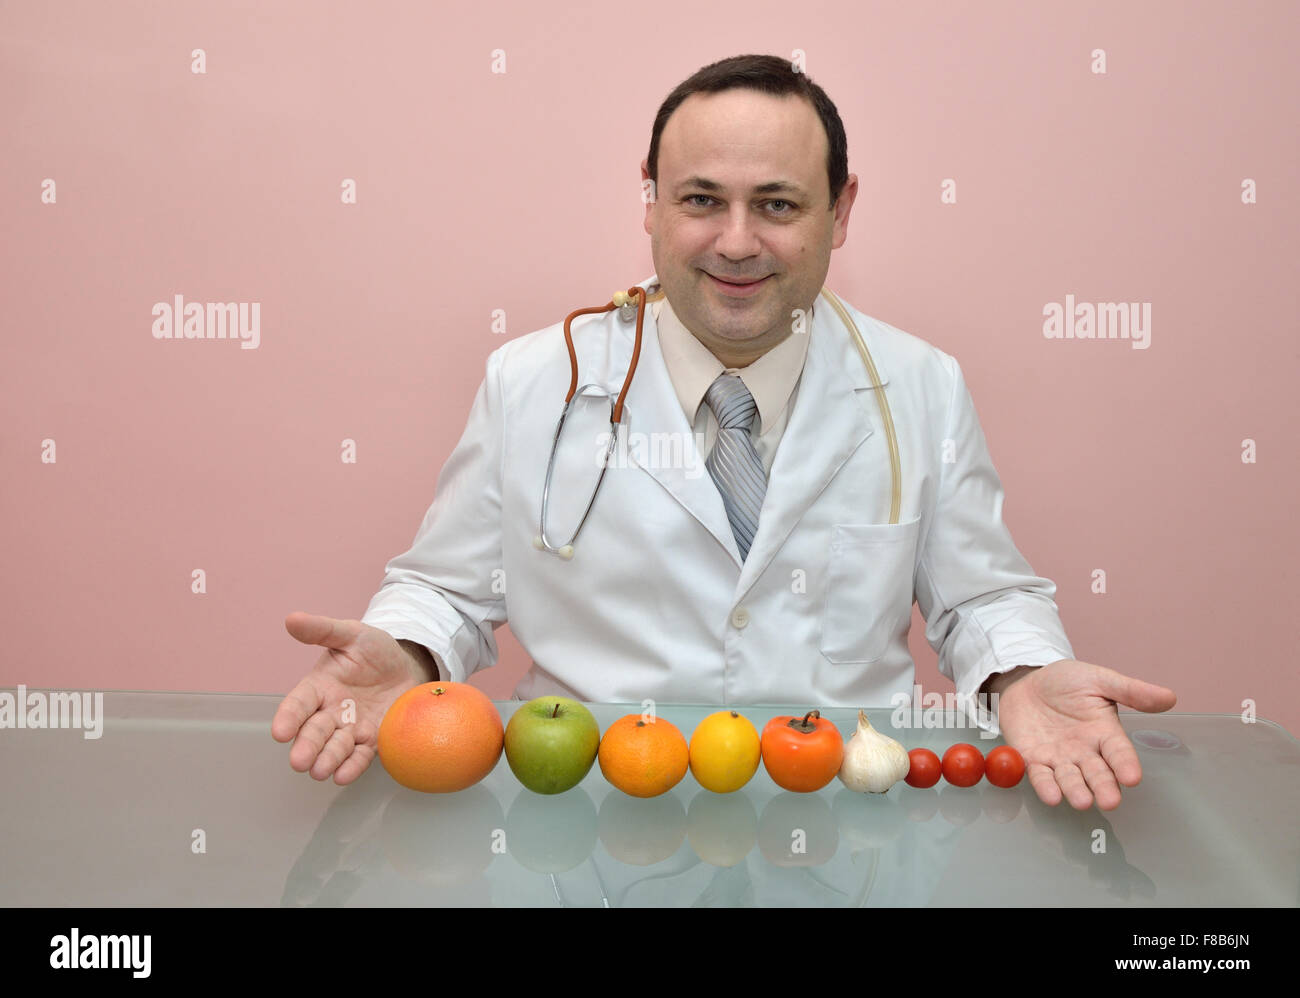 Doctor suggesting healthy fruits and vegetables Stock Photo